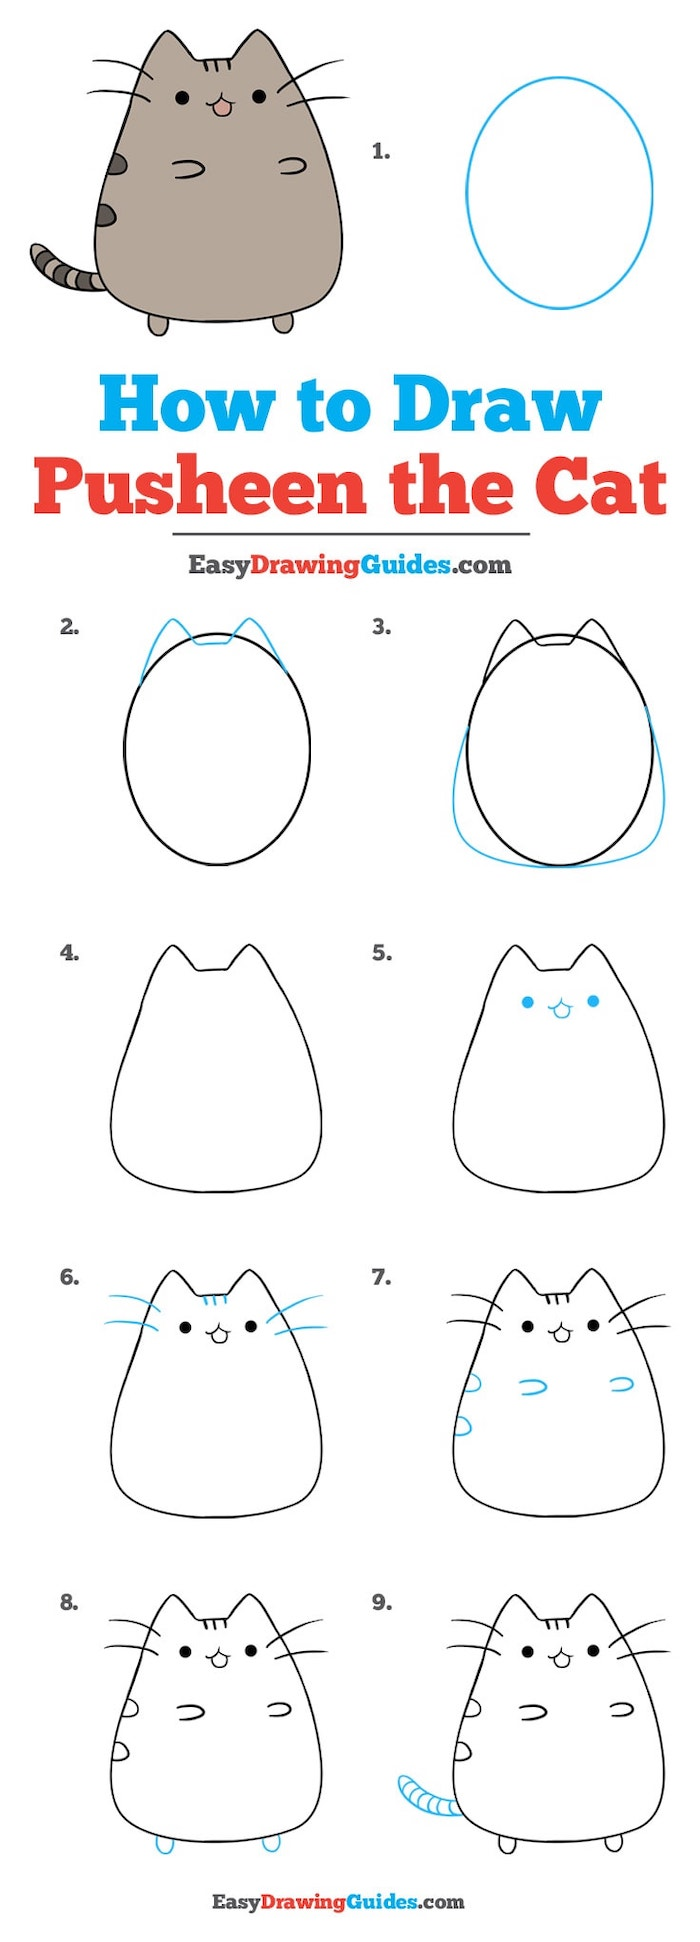 how to draw pusheen the cat in nine steps, step by step diy tutorial, easy drawing tutorials, white background